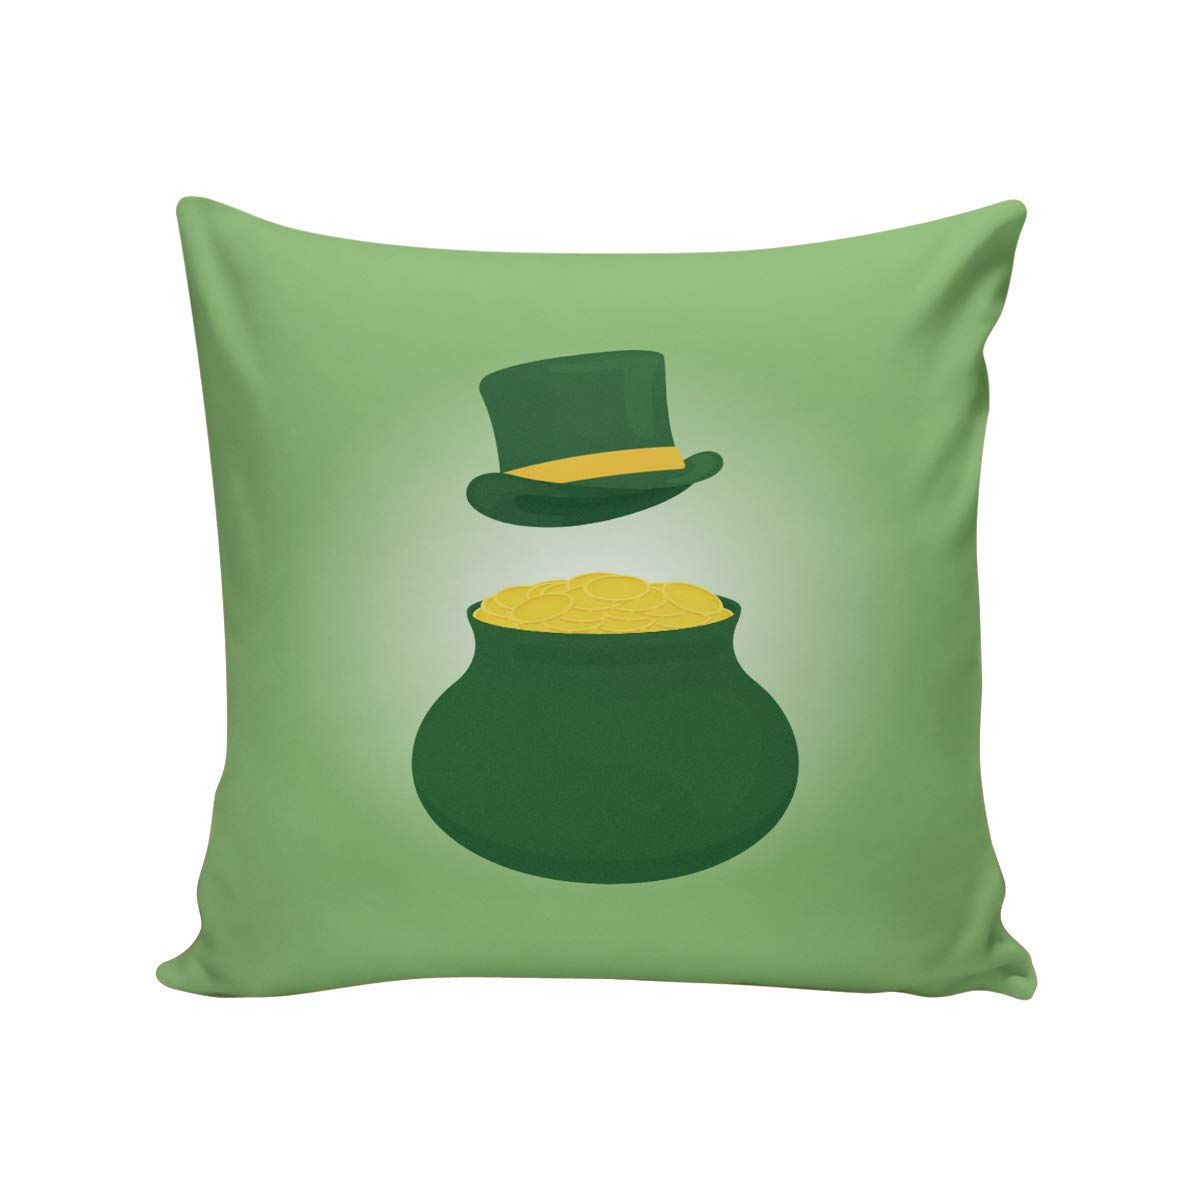 Amazon.com: Picpeak Personalized Throw Pillow Case Cushion ...